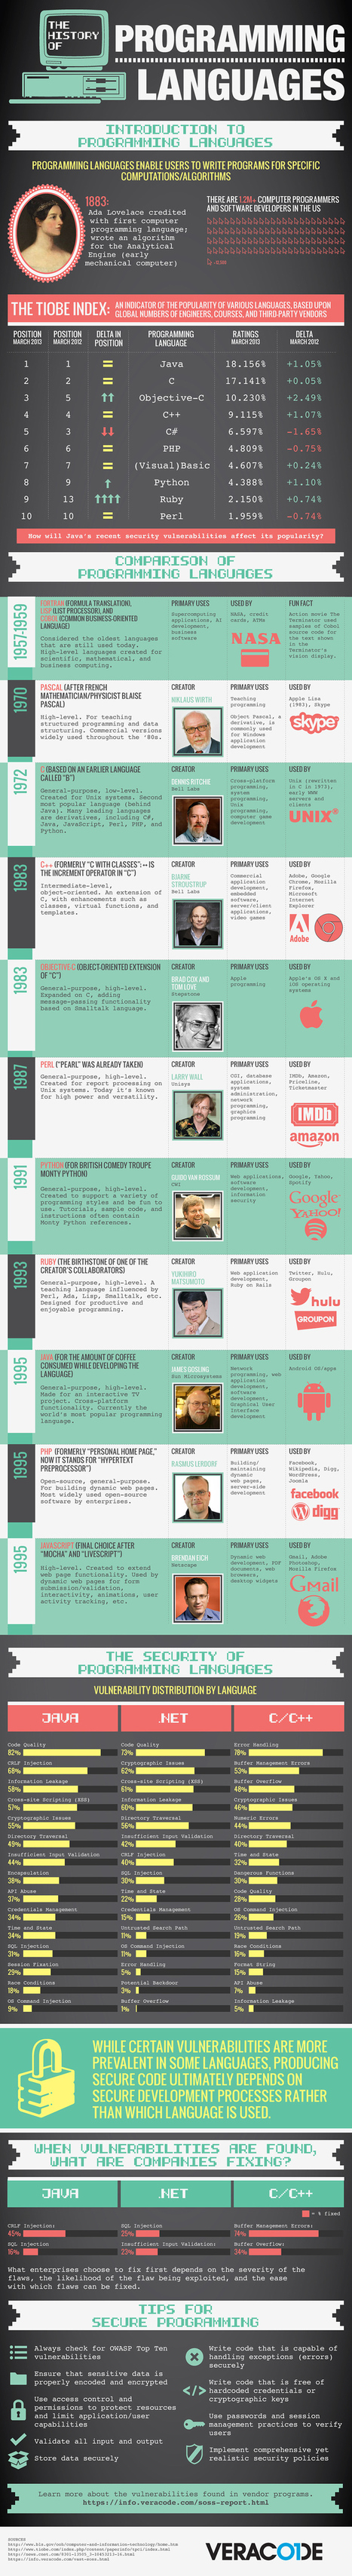 The history of programming languages illustrated | www.iclarified.com | Scoop.it